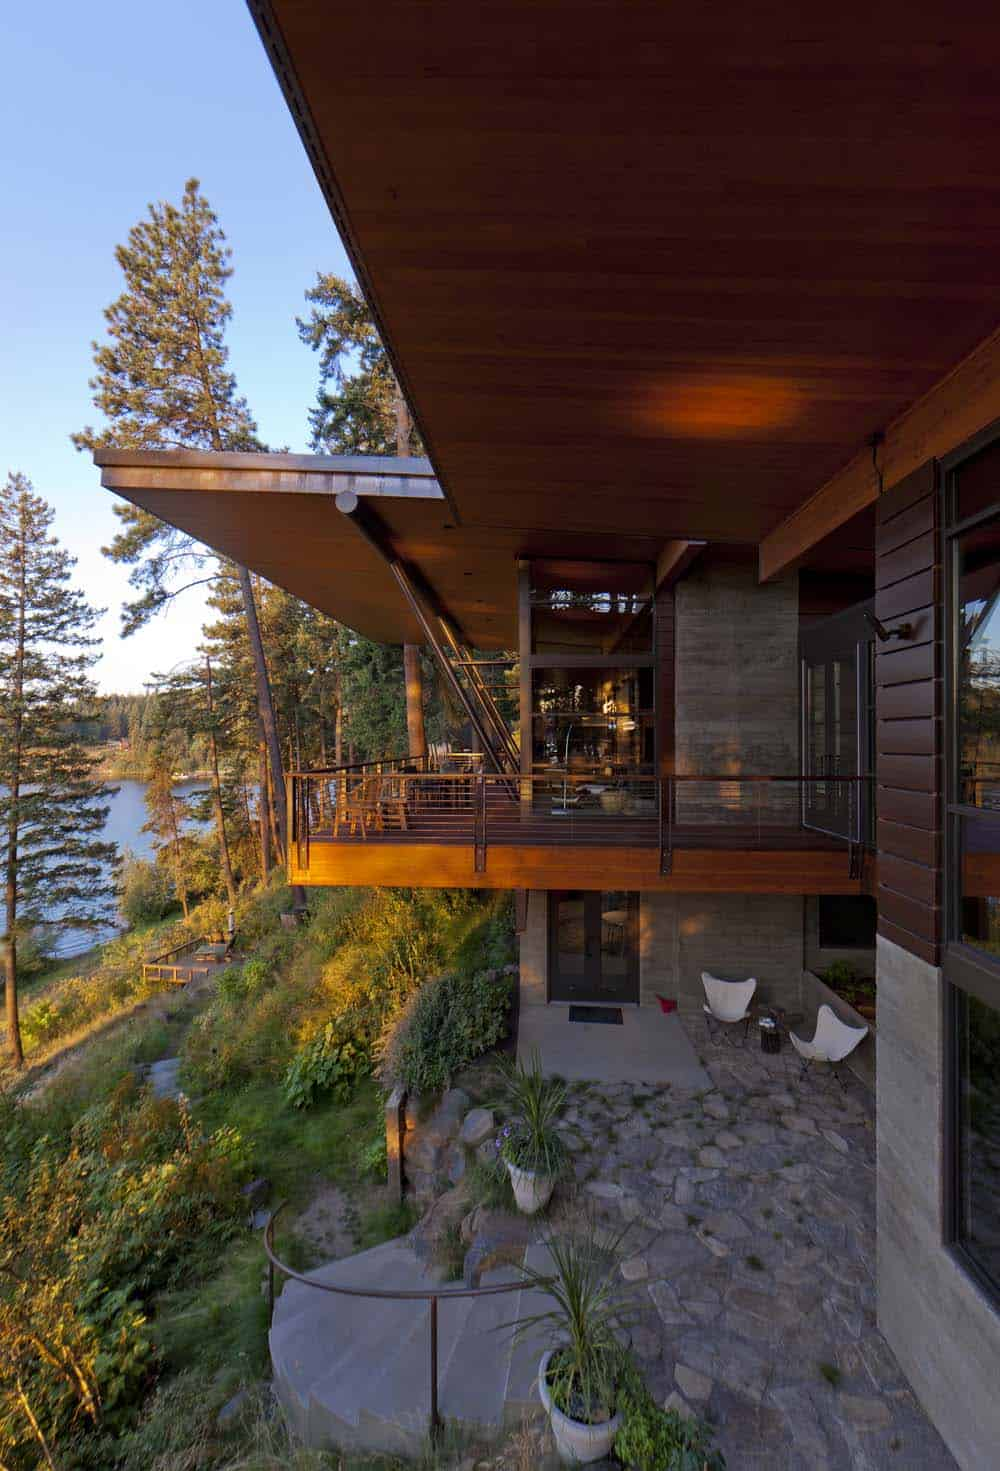 Cantilever Balcony Design Plans: Modern Log Cabin Perched On A Cliff Overlooking Coeur D